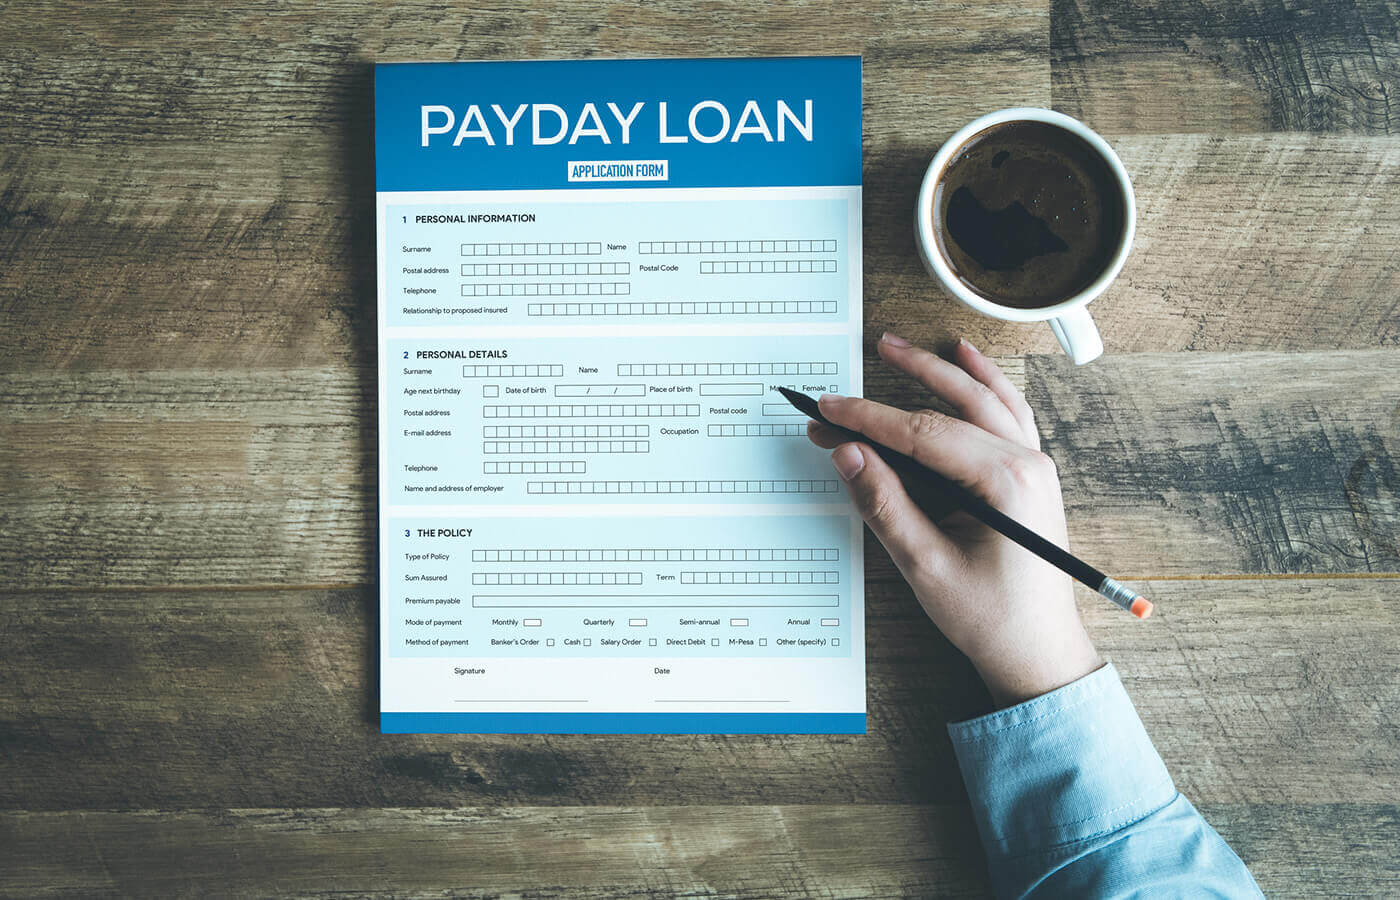 COVID-19 And Loan Moratorium In Bulgaria: Don't Pay Off Your Loans With New Ones